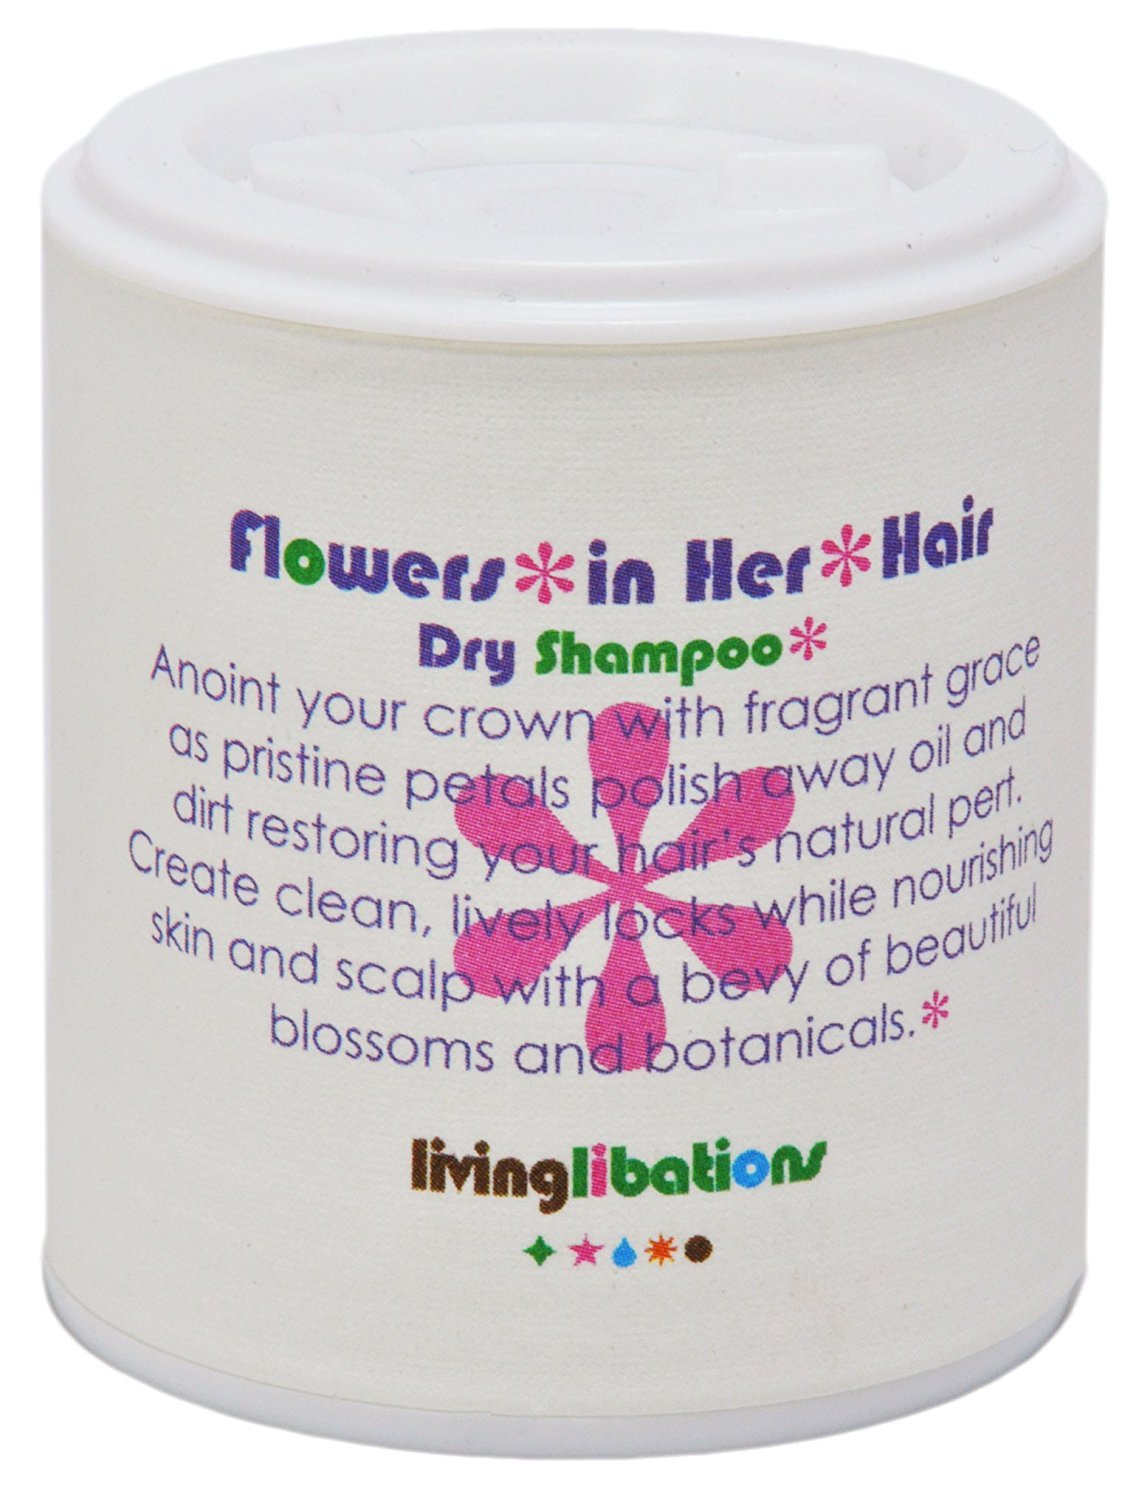 Living Libations - Organic/Wildcrafted Flowers in Her Hair Dry Shampoo (1.69 oz/50 ml) by Living Libations